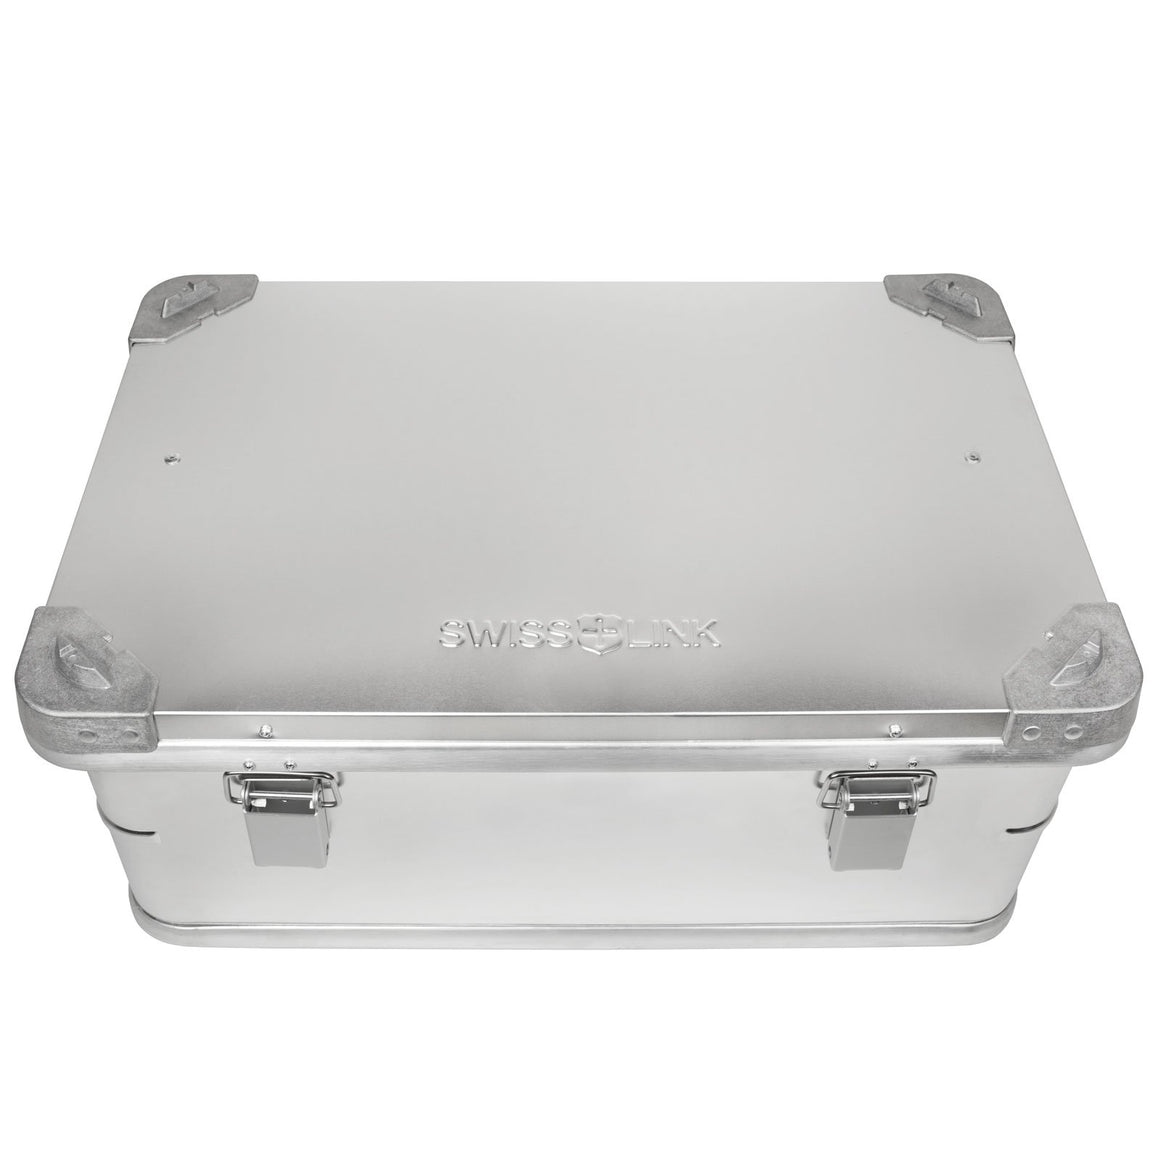 Swiss Link Aluminum Storage Boxes - Small